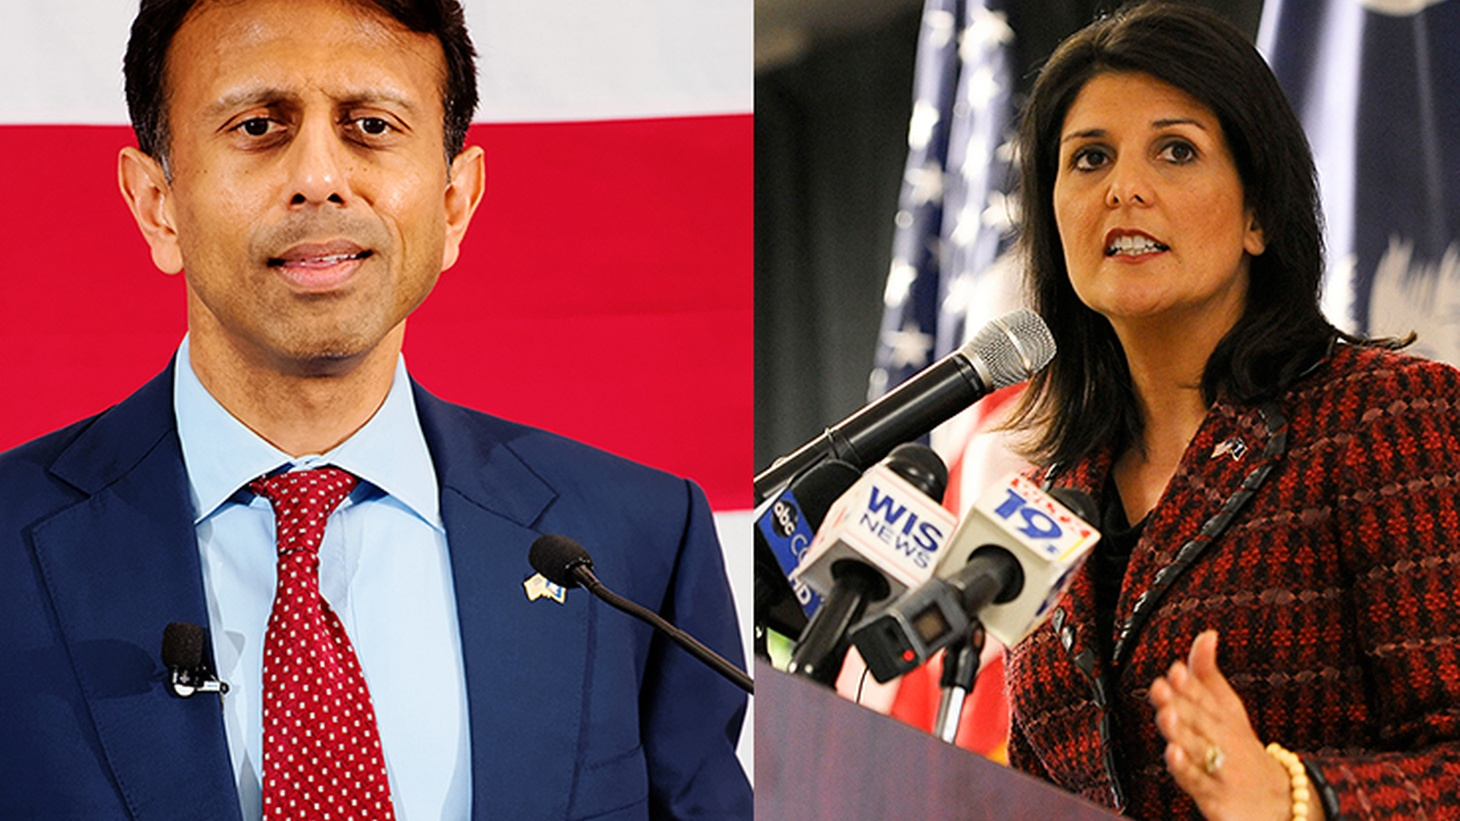 Both Bobby Jindal and Nikki Haley are governors of Southern states. And they're also both Indian-Americans. What else do they have in common? Two Latinos are running for president - but are they saying what Latinos want to hear? Also: The history of Dole Whip and your summer reading guide.